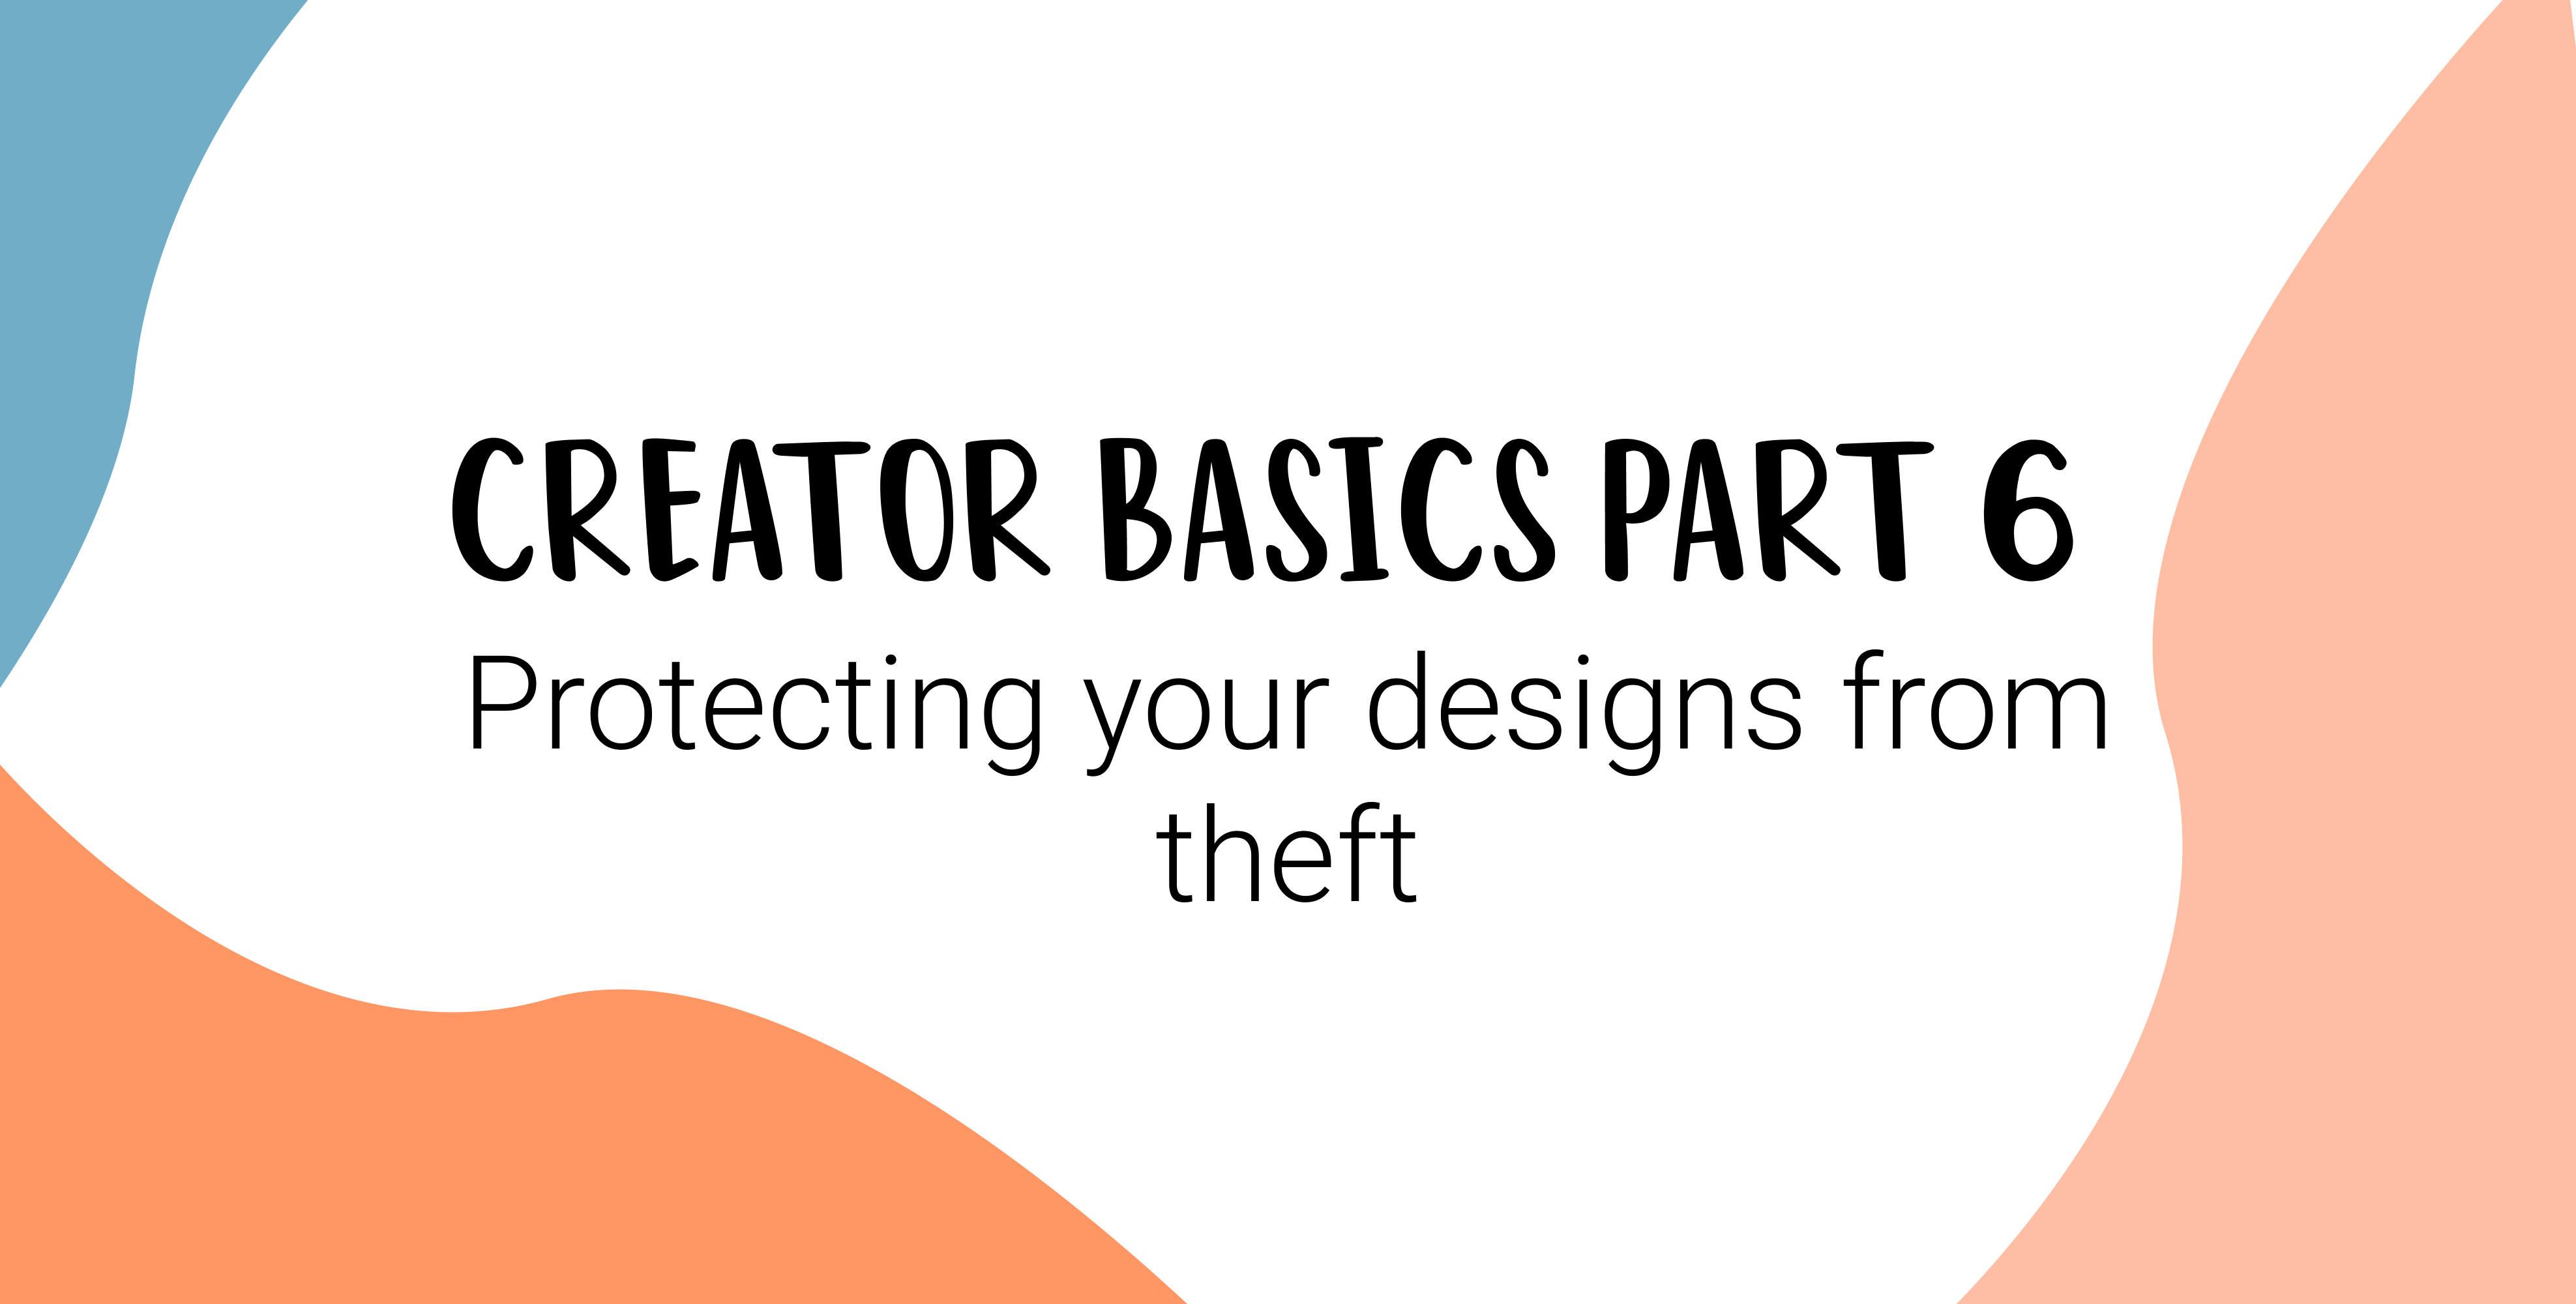 Creator basics part six - protecting your designs from theft